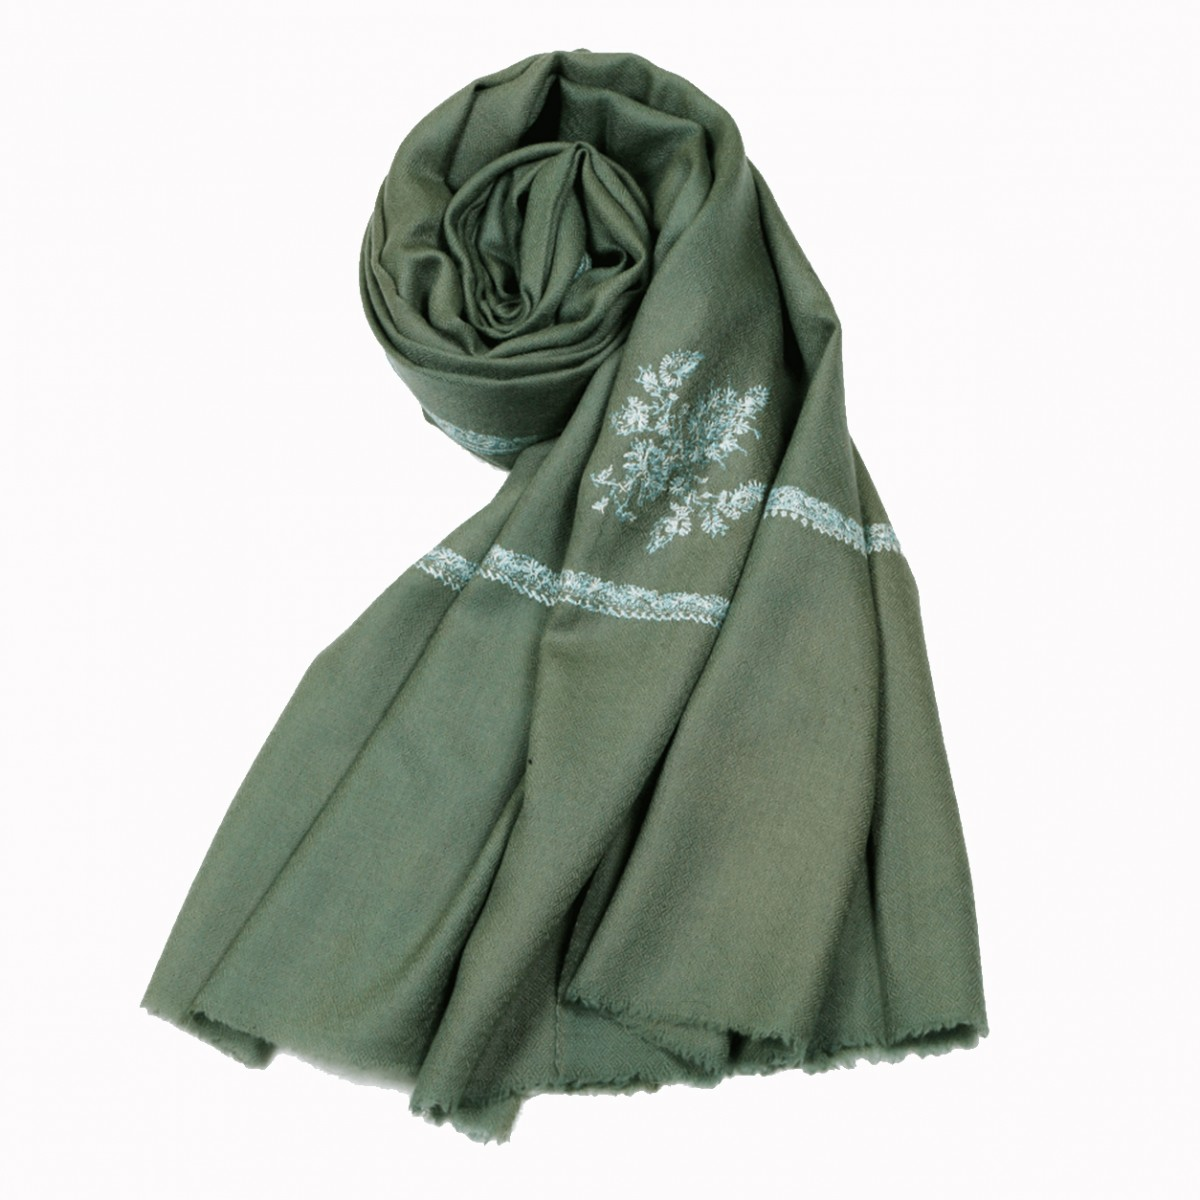 Embroidered Handloom Pashmina Stole - Russian Green